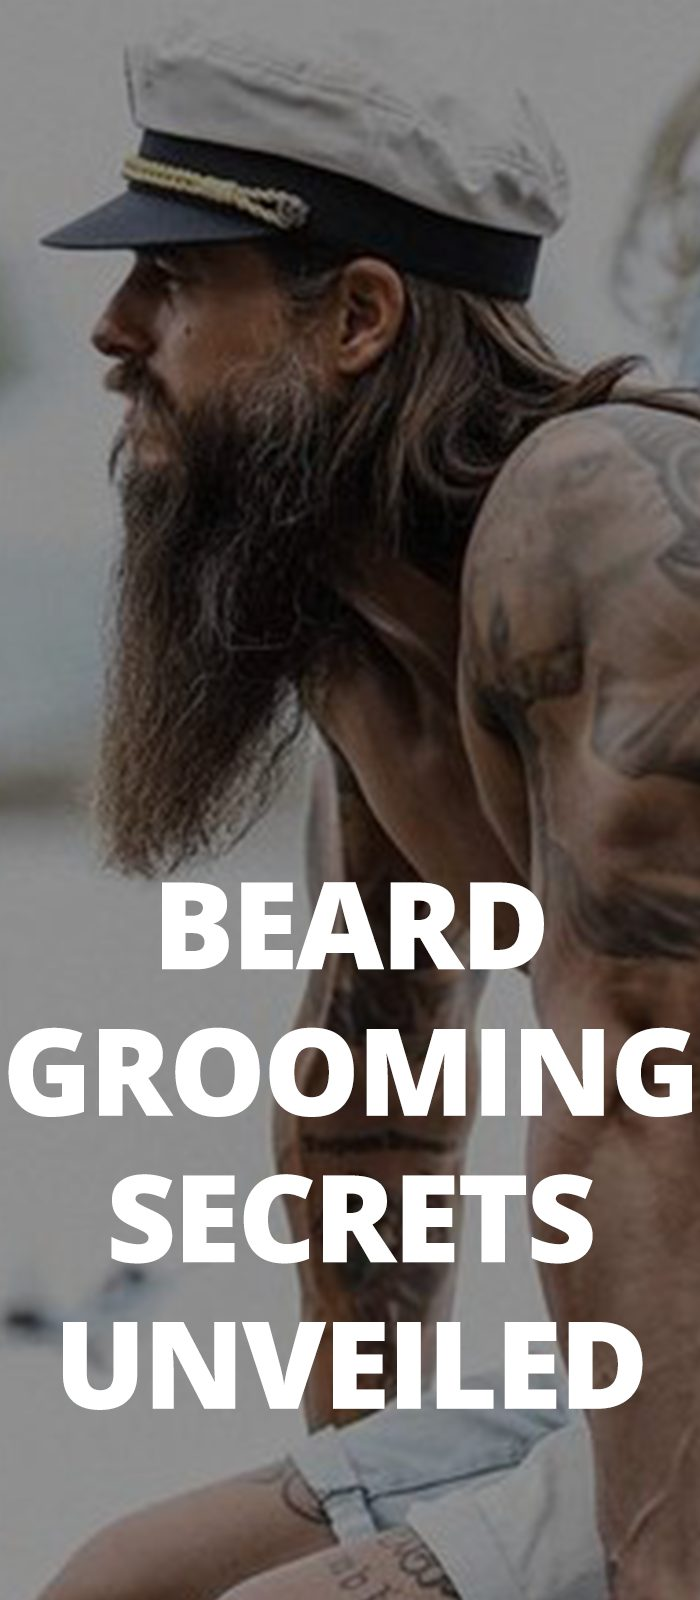 Beard Grooming Secrets Unveiled